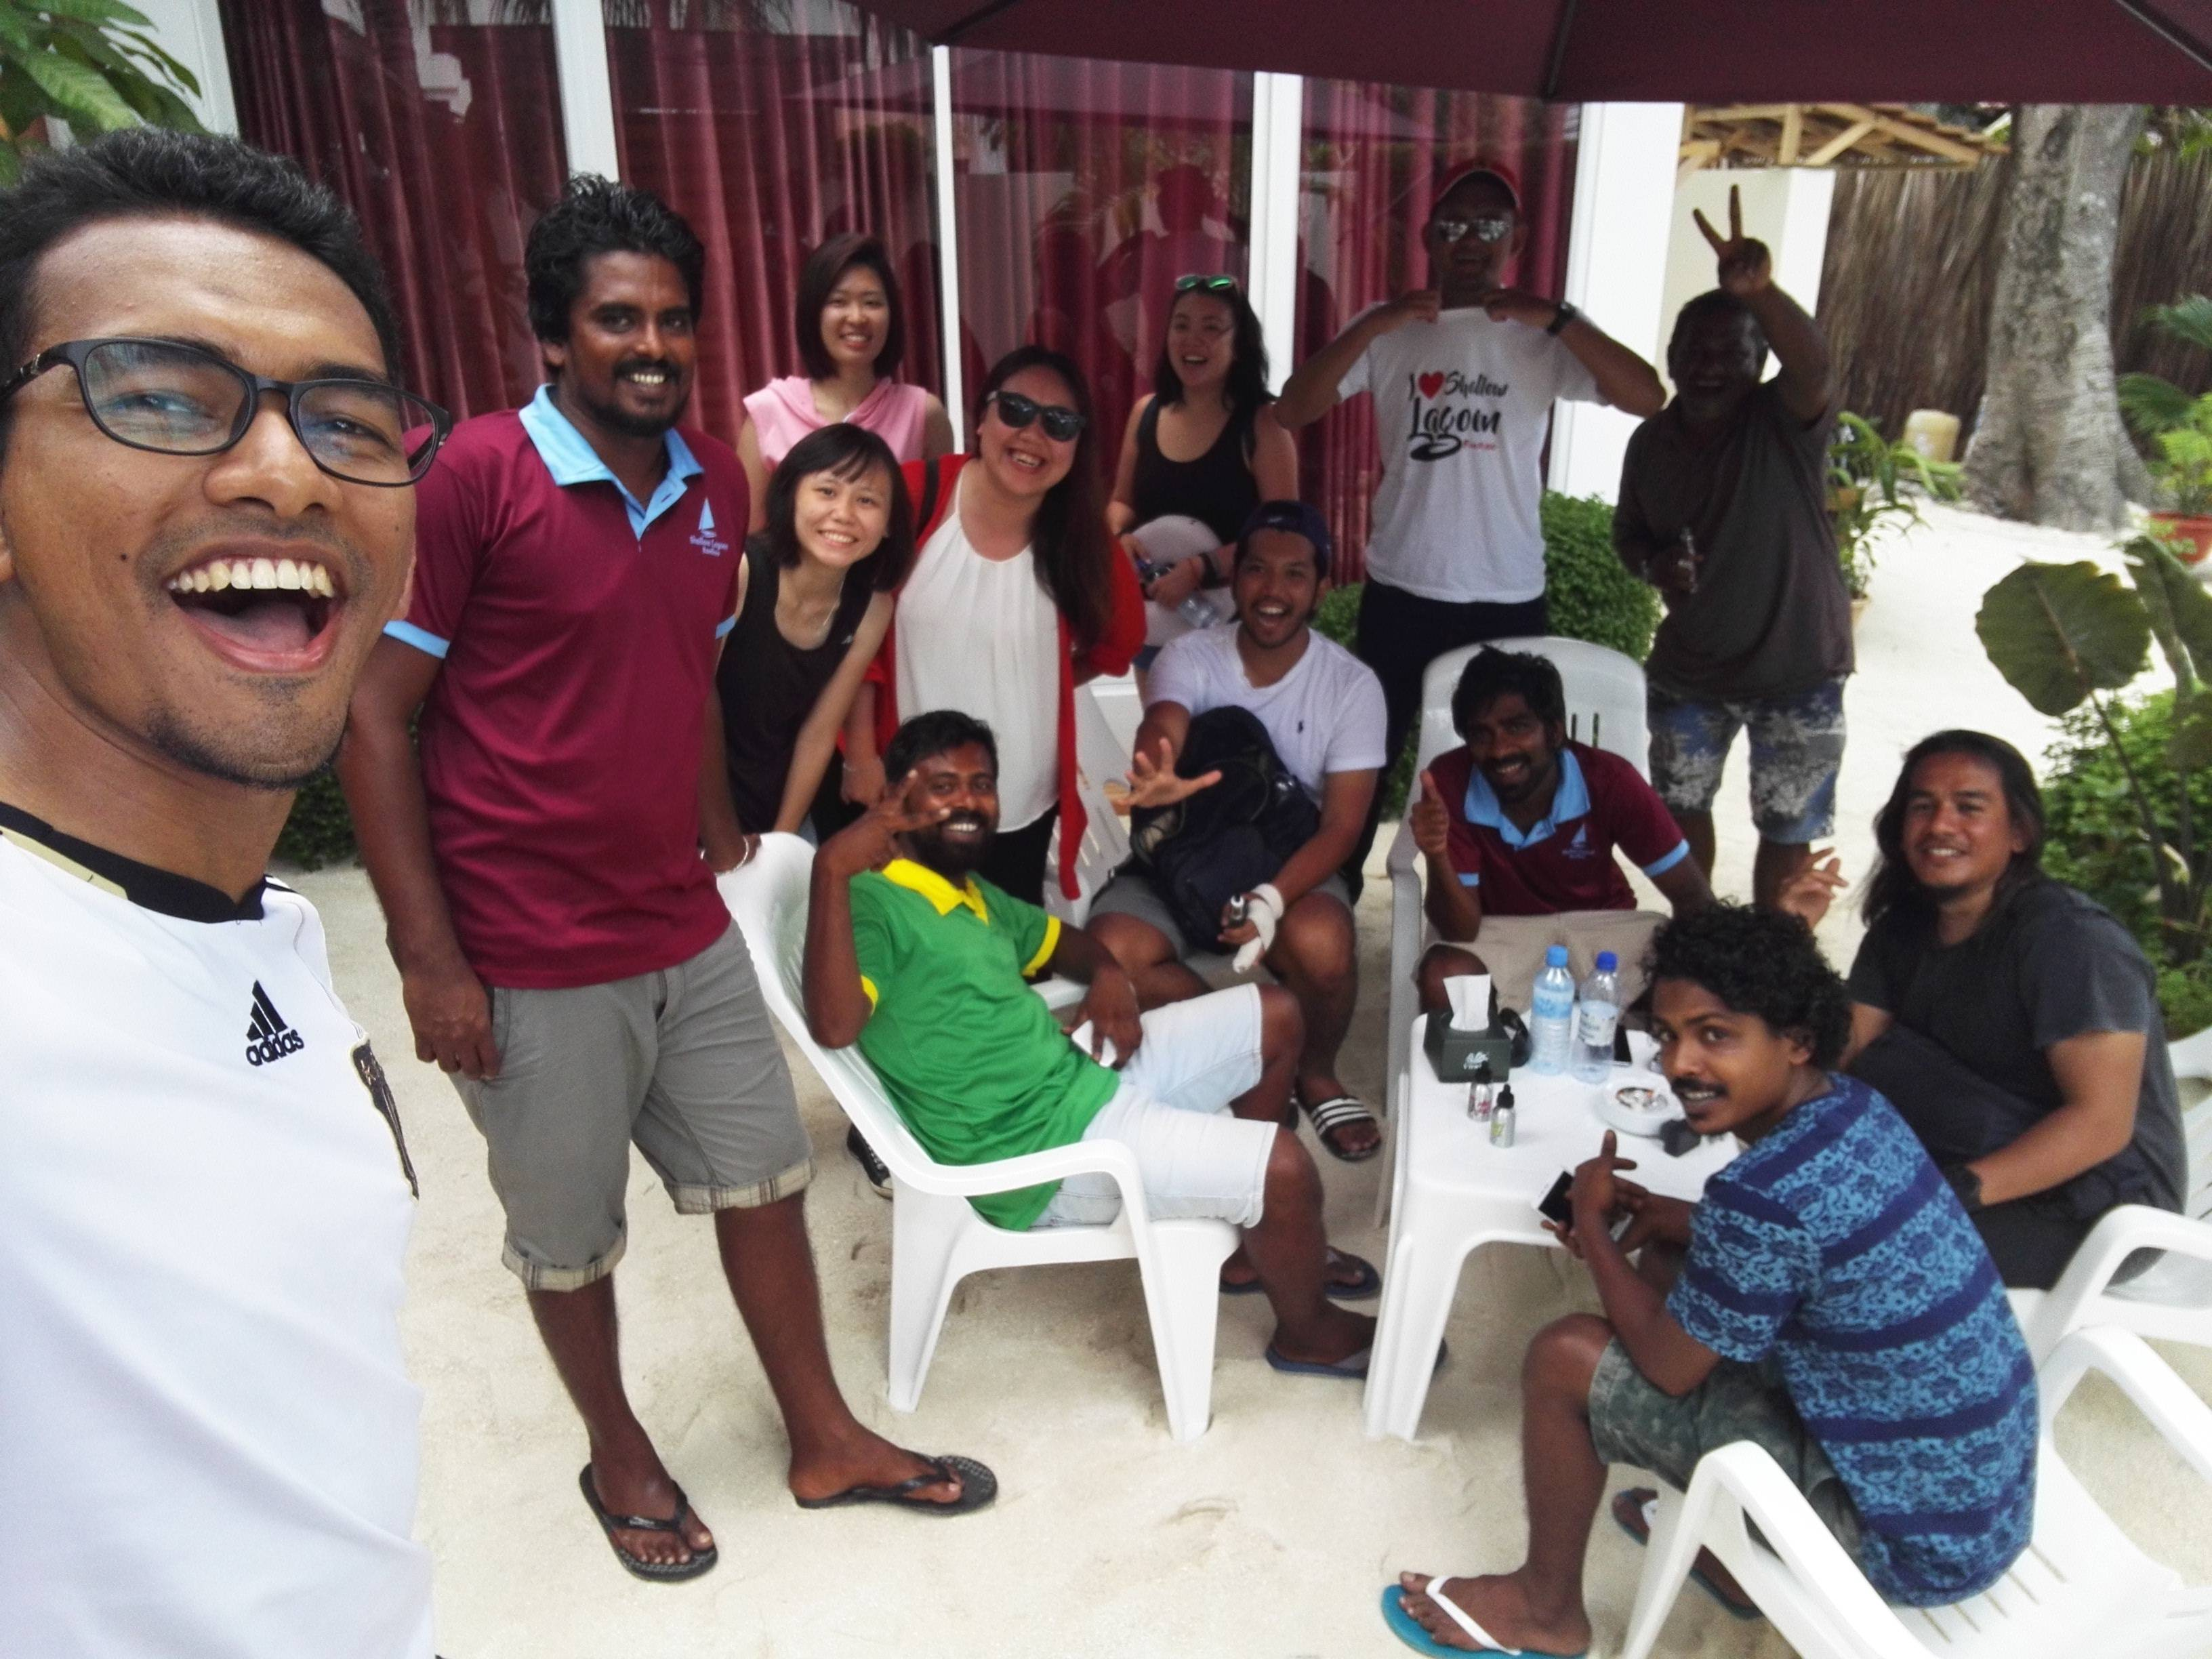 Thanks Shallow Lagoon Rasdhoo and Holiday Garden Rasdhoo for the great hospitality. We shall meet again soon!